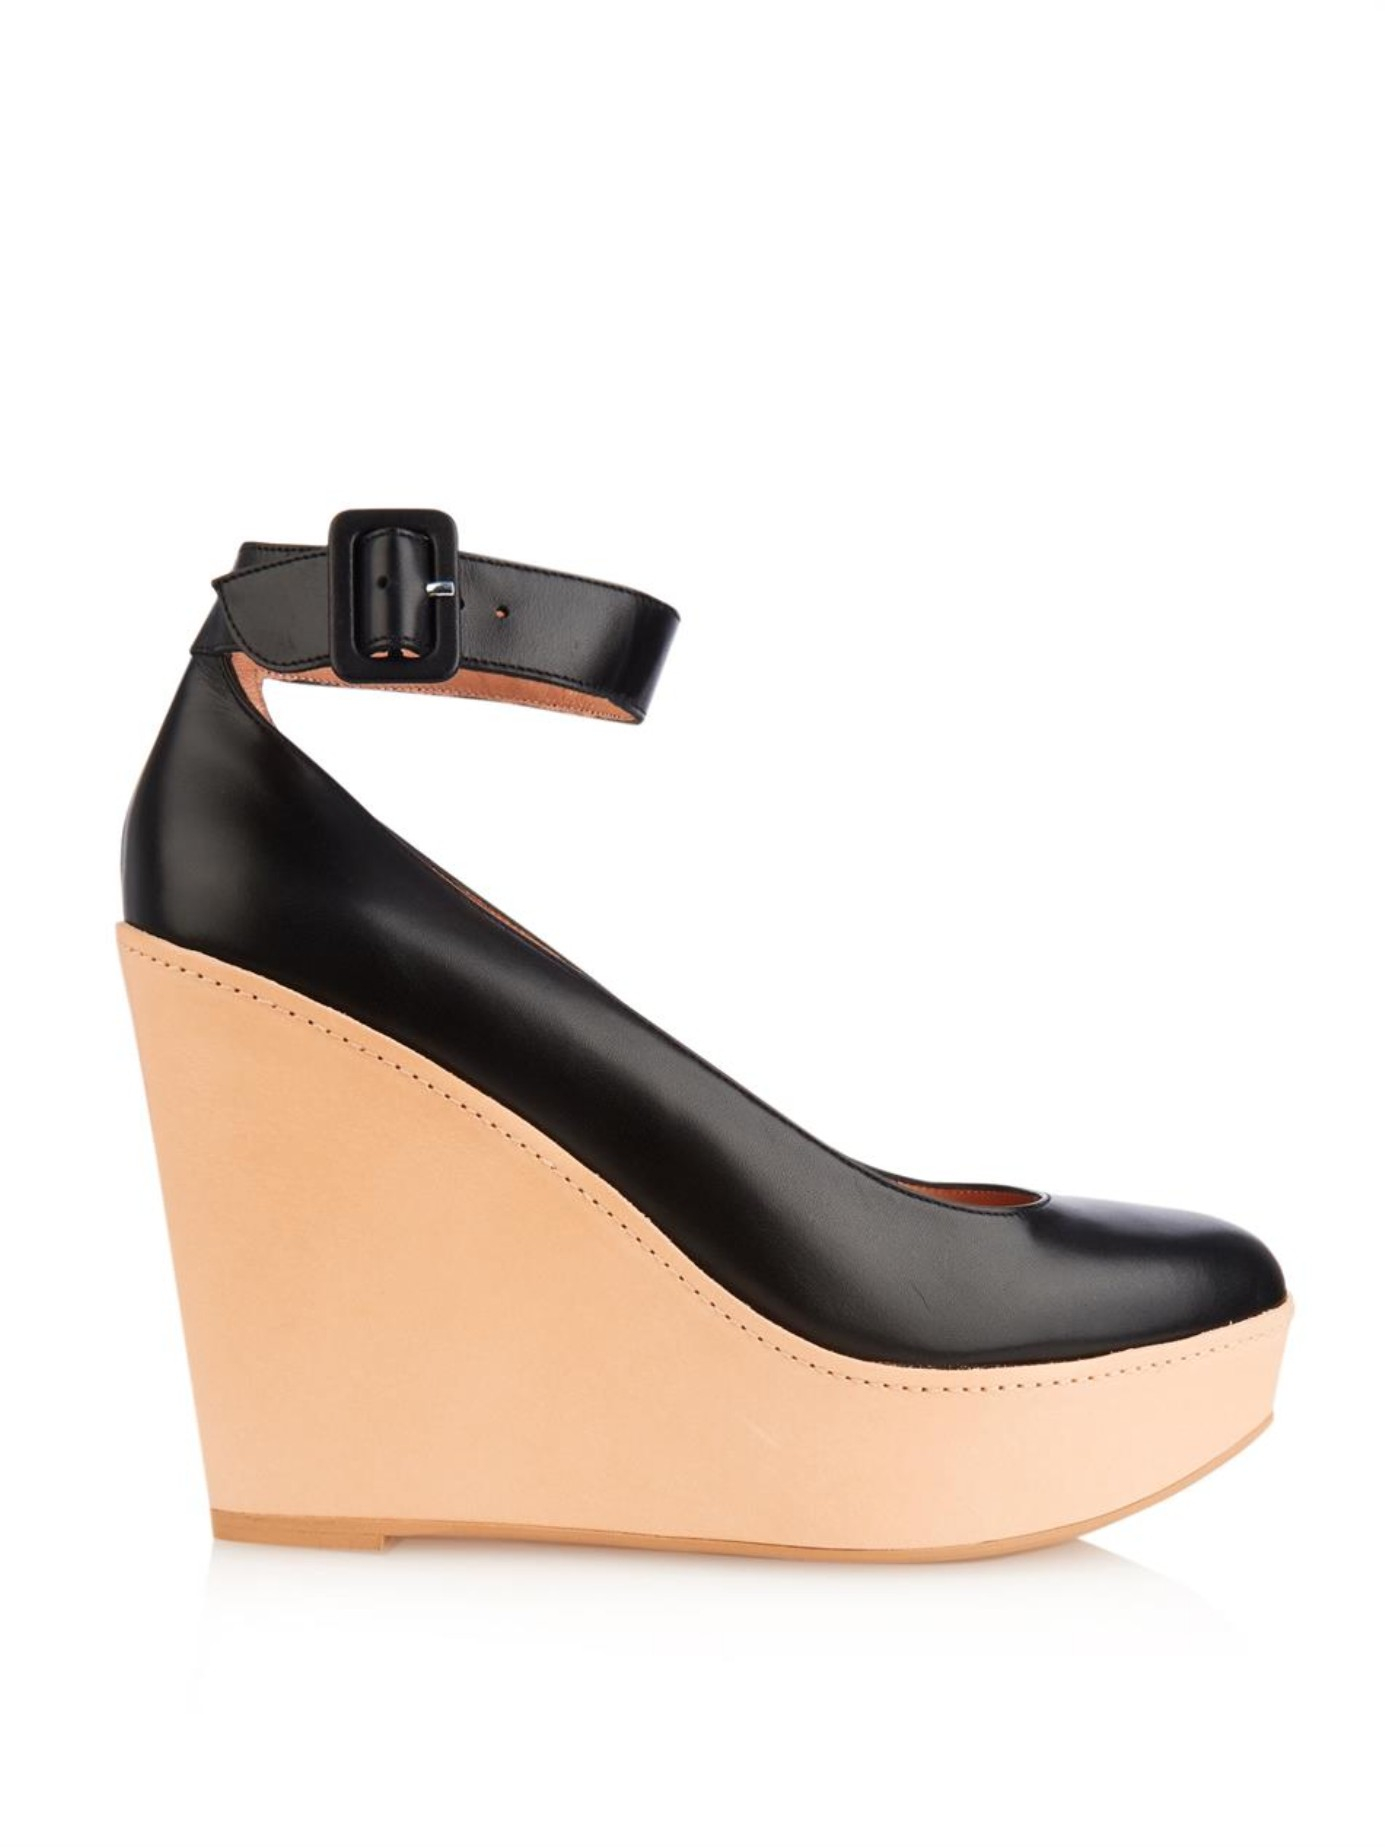 Robert Clergerie Clergerie Paris Leather Platform Wedge Pumps clearance really cheap price original visa payment cheap price the best store to get DCLJ9DWfU